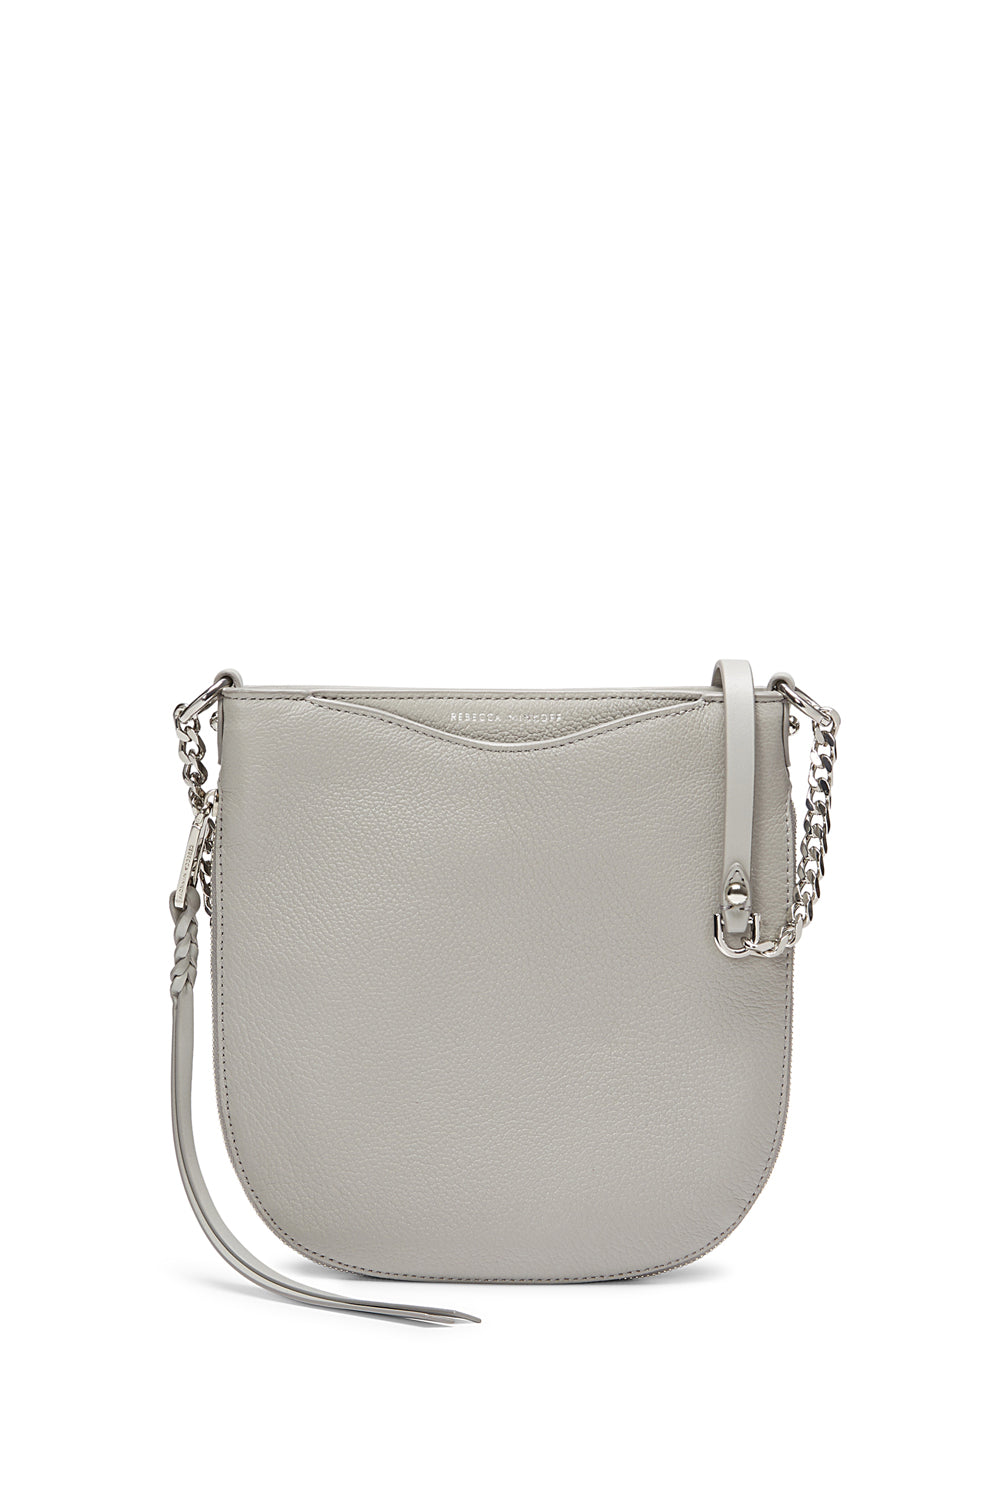 Emma Swing Crossbody